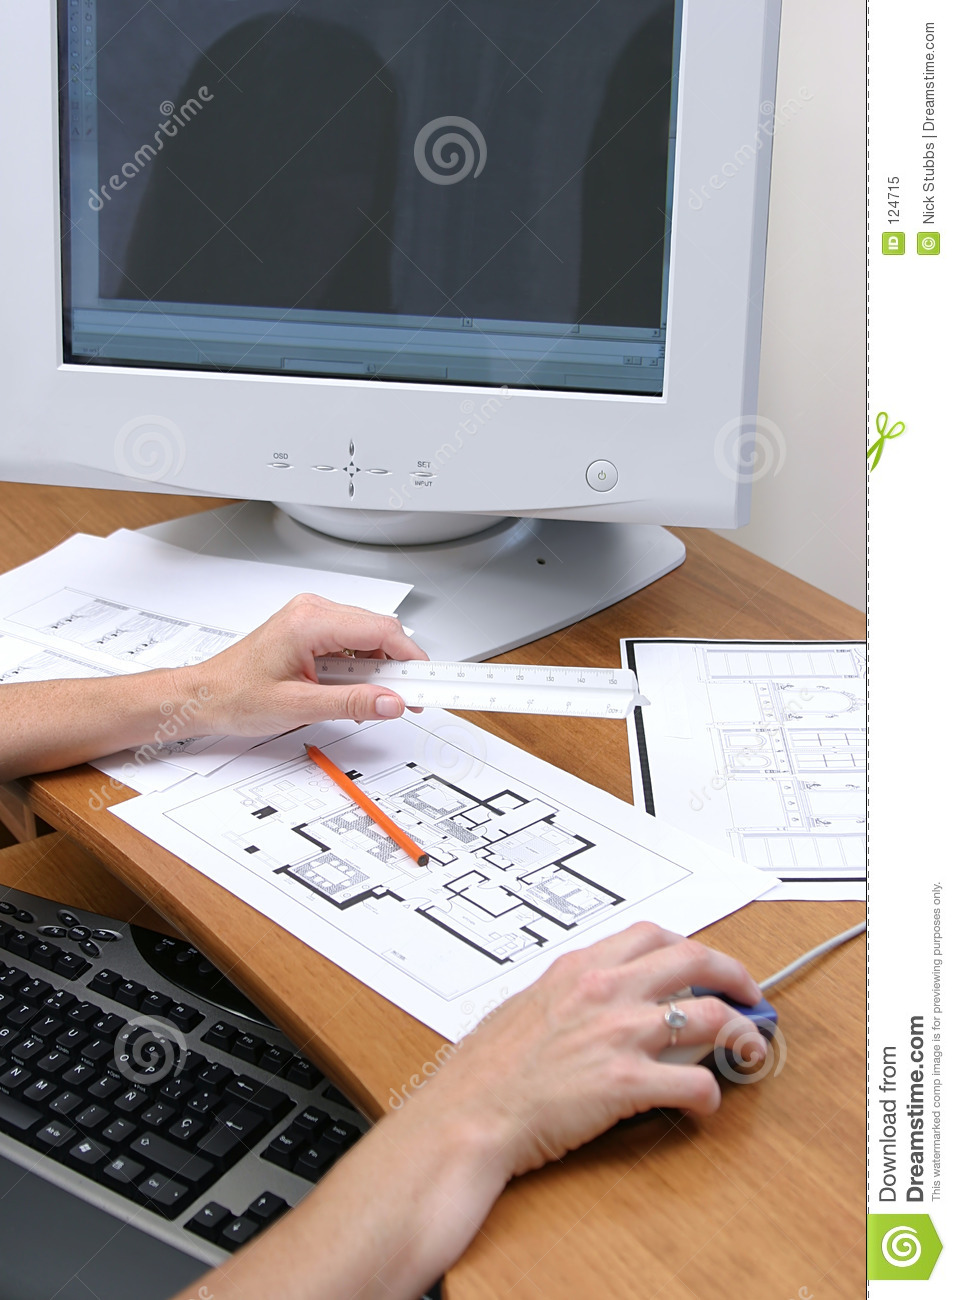 Persons Hands Working On A Drawing And Loading To A